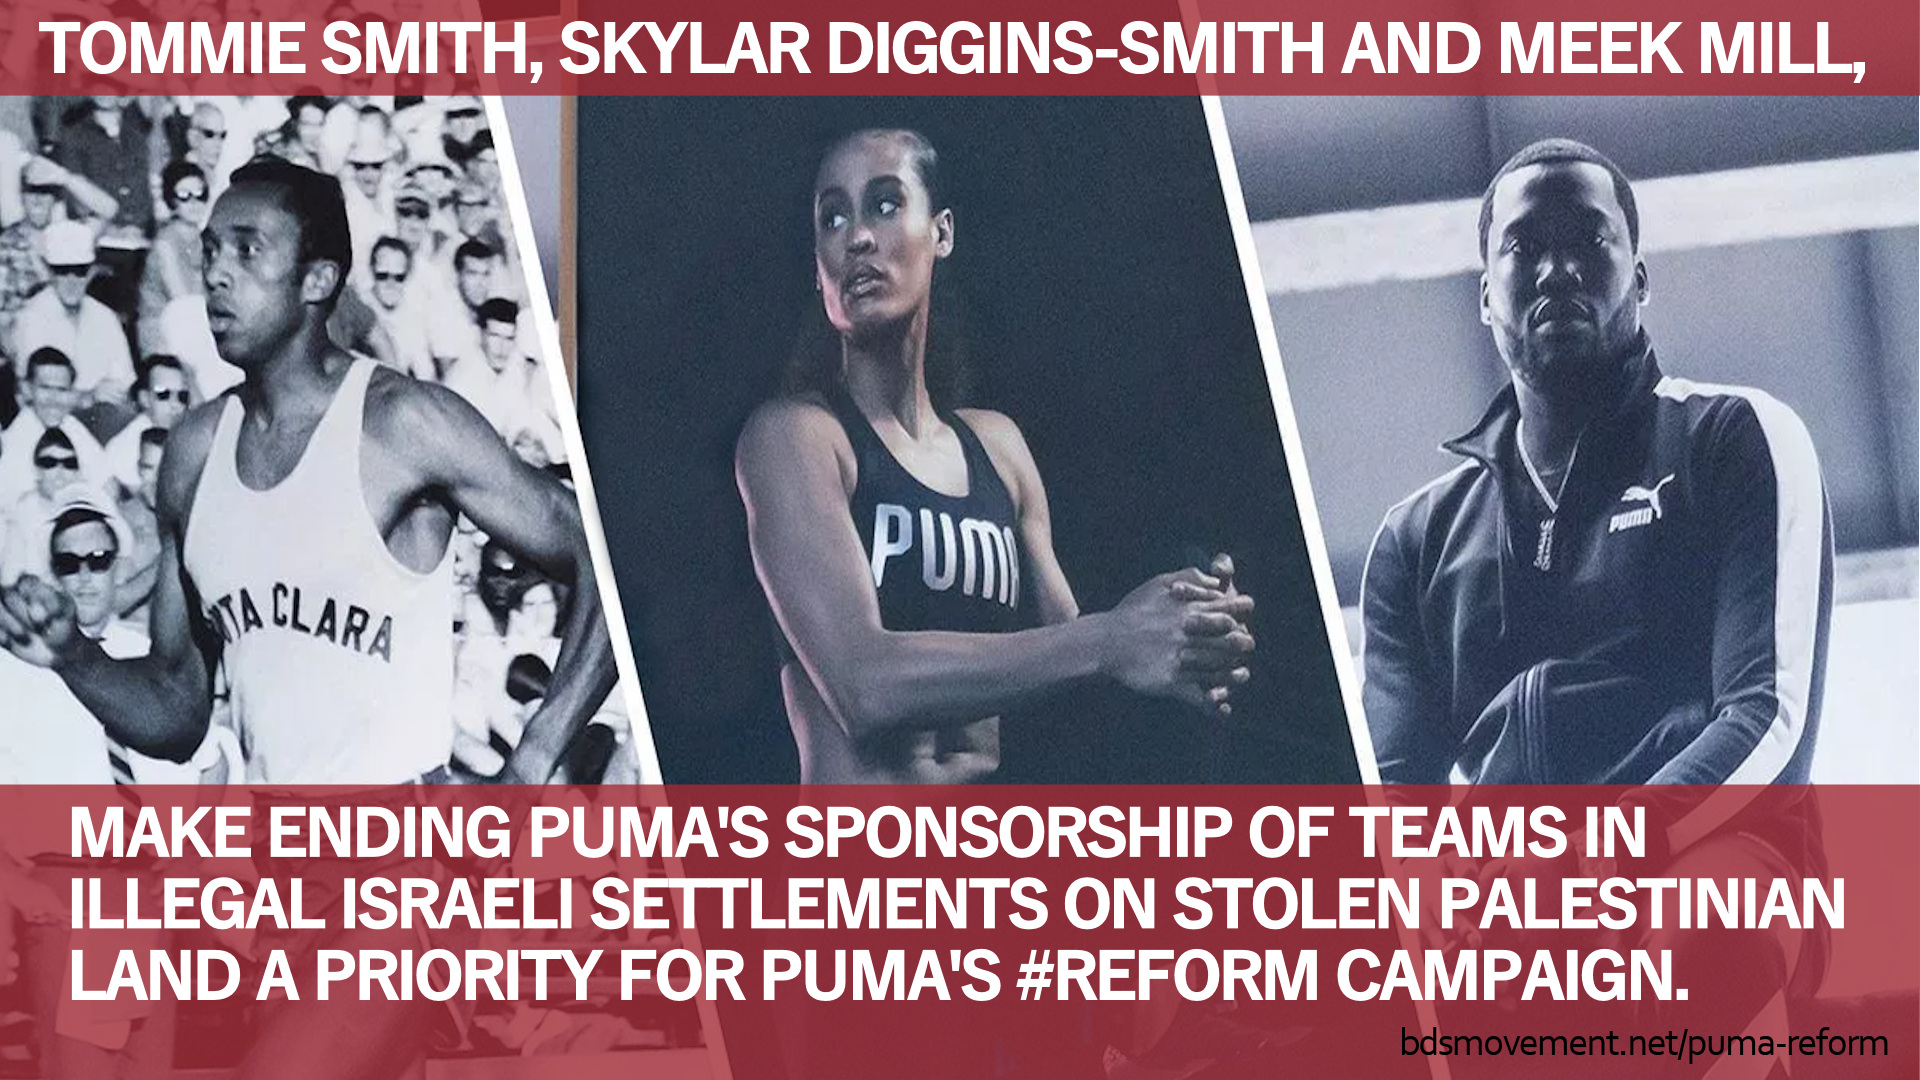 PACBI gatecrashes PUMA's #REFORM social media campaign